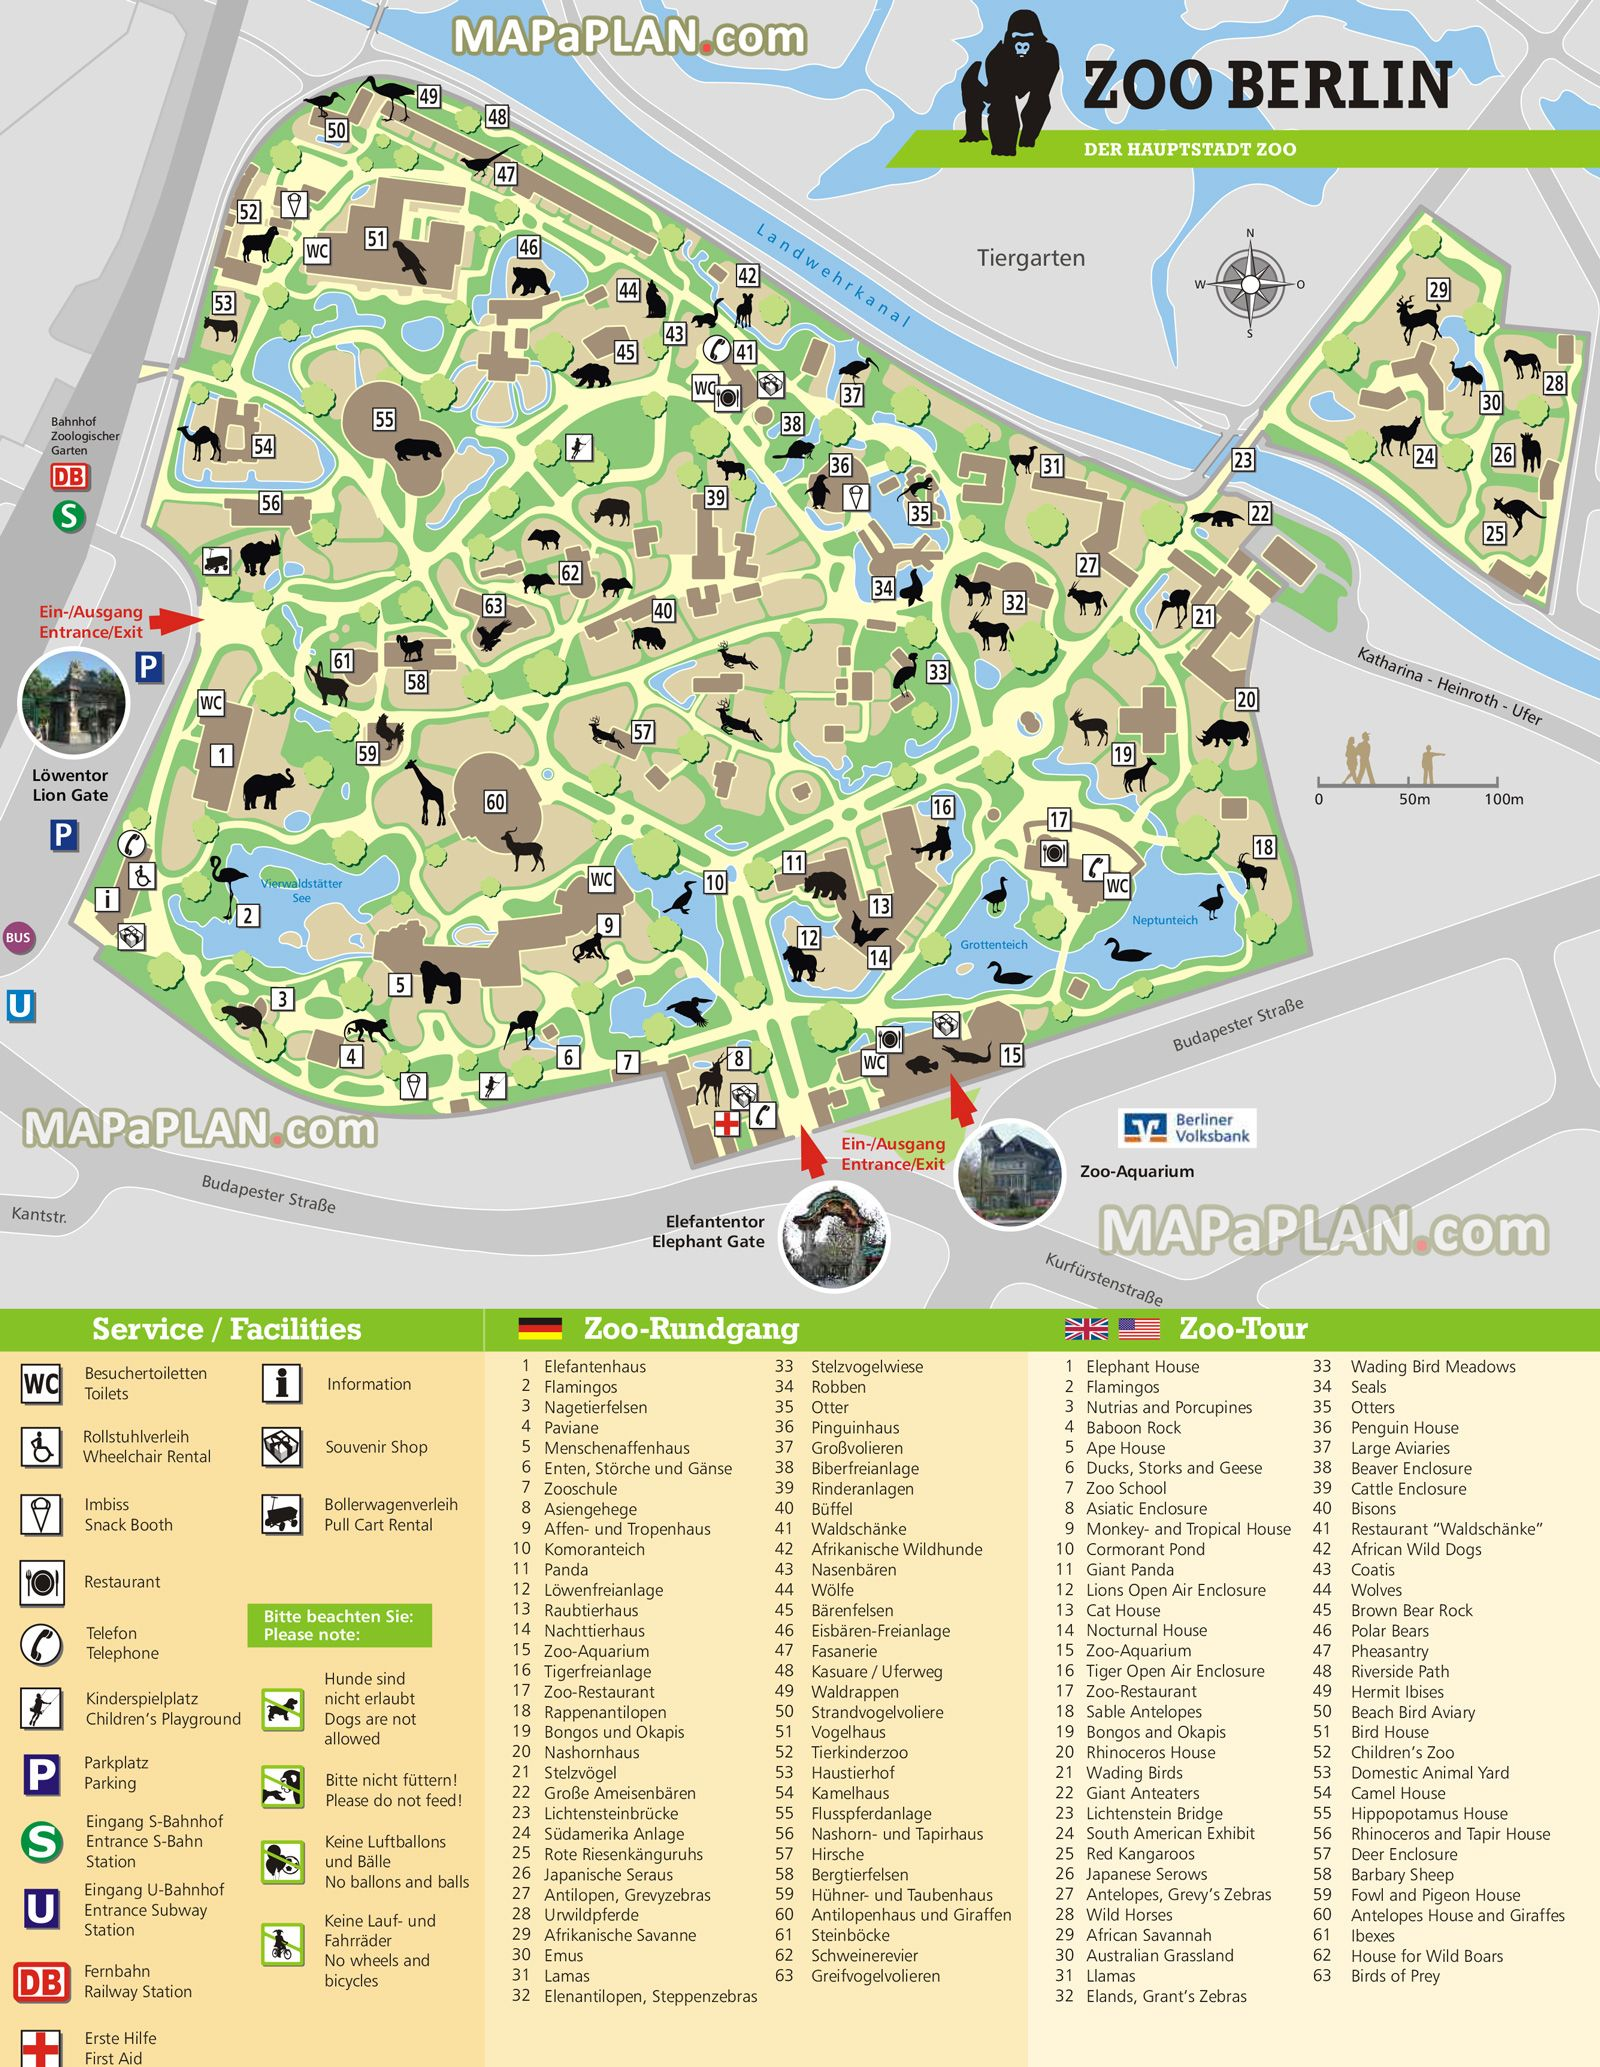 berlin zoo map zoos pinterest zoo map travel and berlin. Black Bedroom Furniture Sets. Home Design Ideas